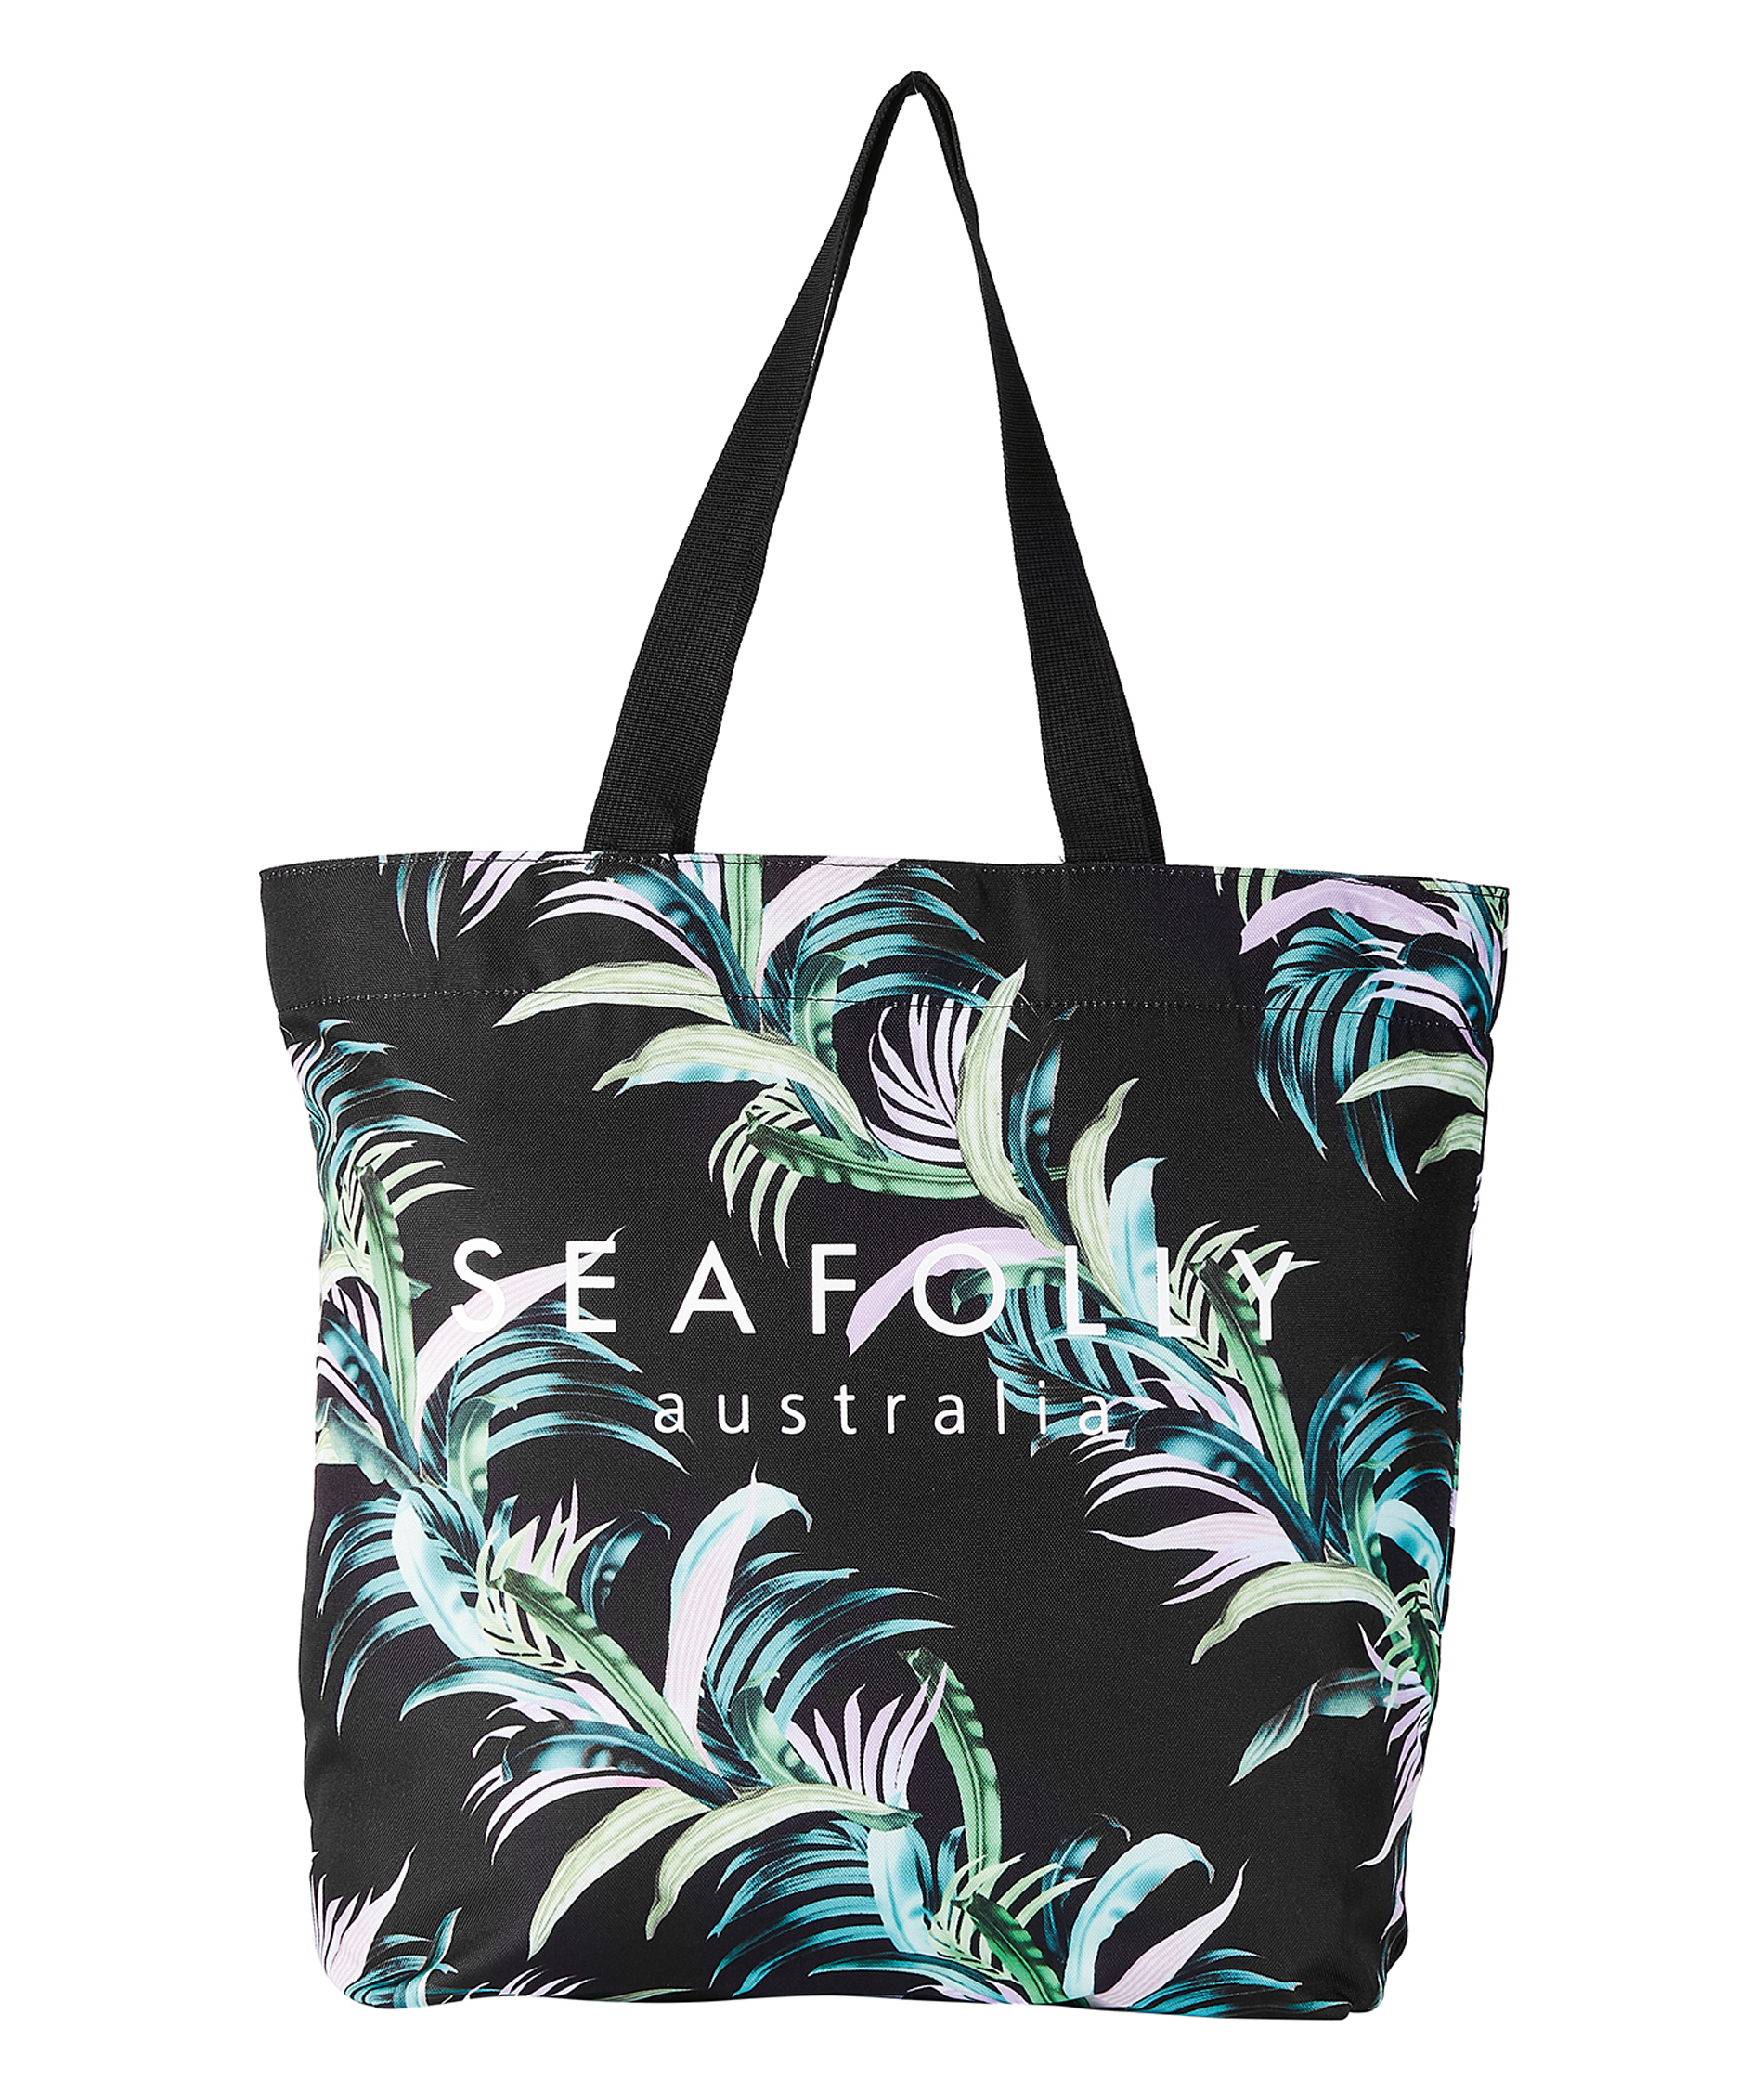 Seafolly Carried Away Las Palmas Tote Bag